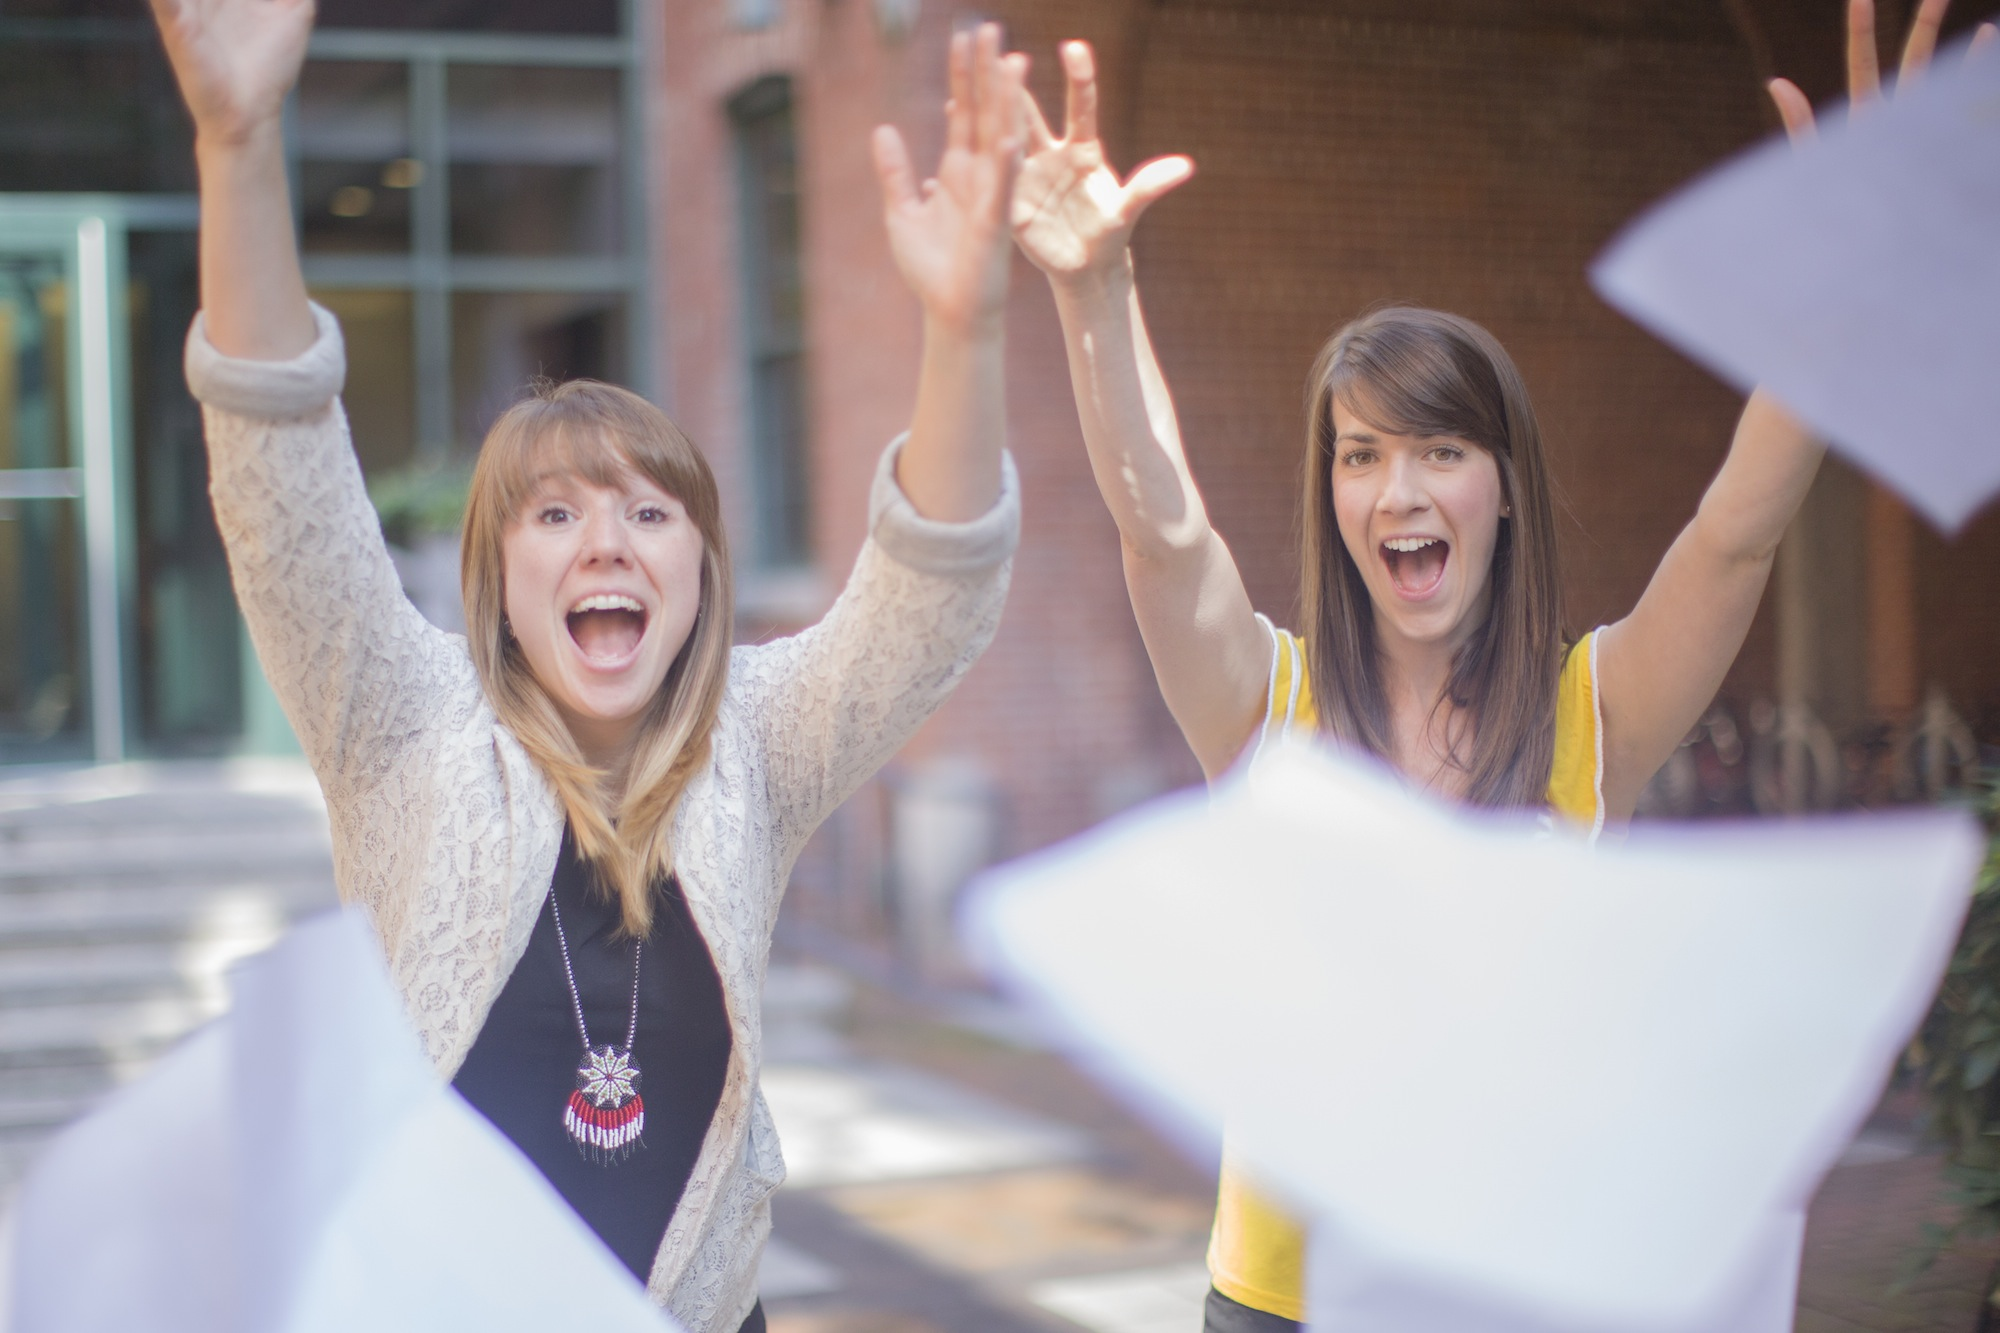 Photo of two young women throwing paper